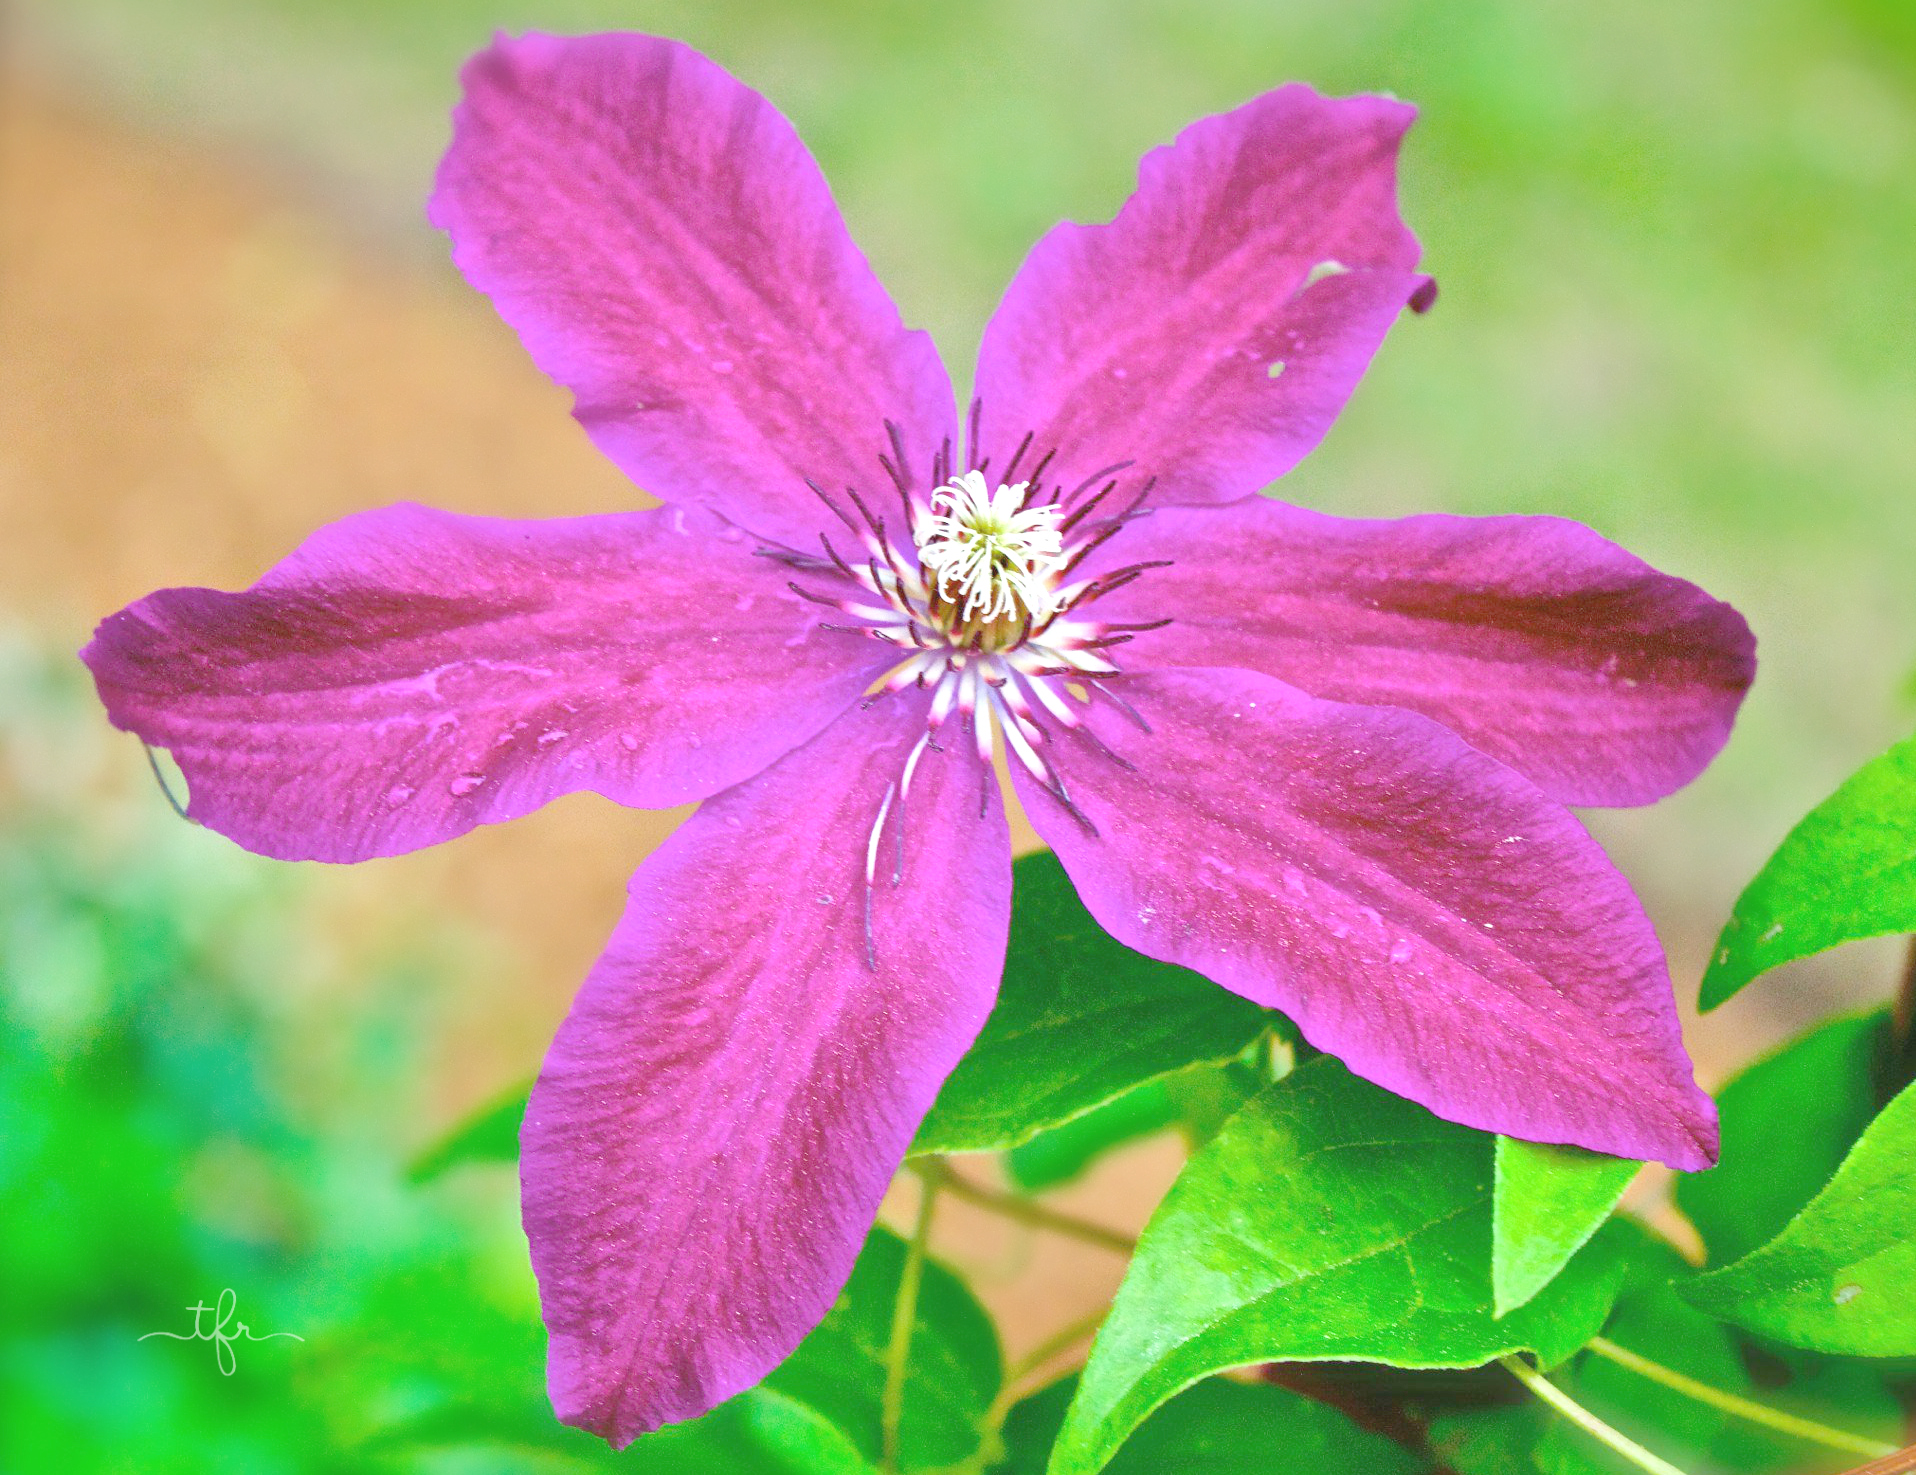 Clematis is one of my favorite flowering vines. It is also sadly a favorite meal of every critter in my yard. Almost any time I've grown clematis, something has snuck in my yard and eaten the roots. Even though I should give up at this point, I don't! Now, I've switched to growing clematis in containers. I've had much better luck! There are a variety of different types of clematis vines you can grow in your yard. They prefer a sunny location with rich, well-draining soil. Looks lovely trailing on fences, lamp posts and standing mailboxes.